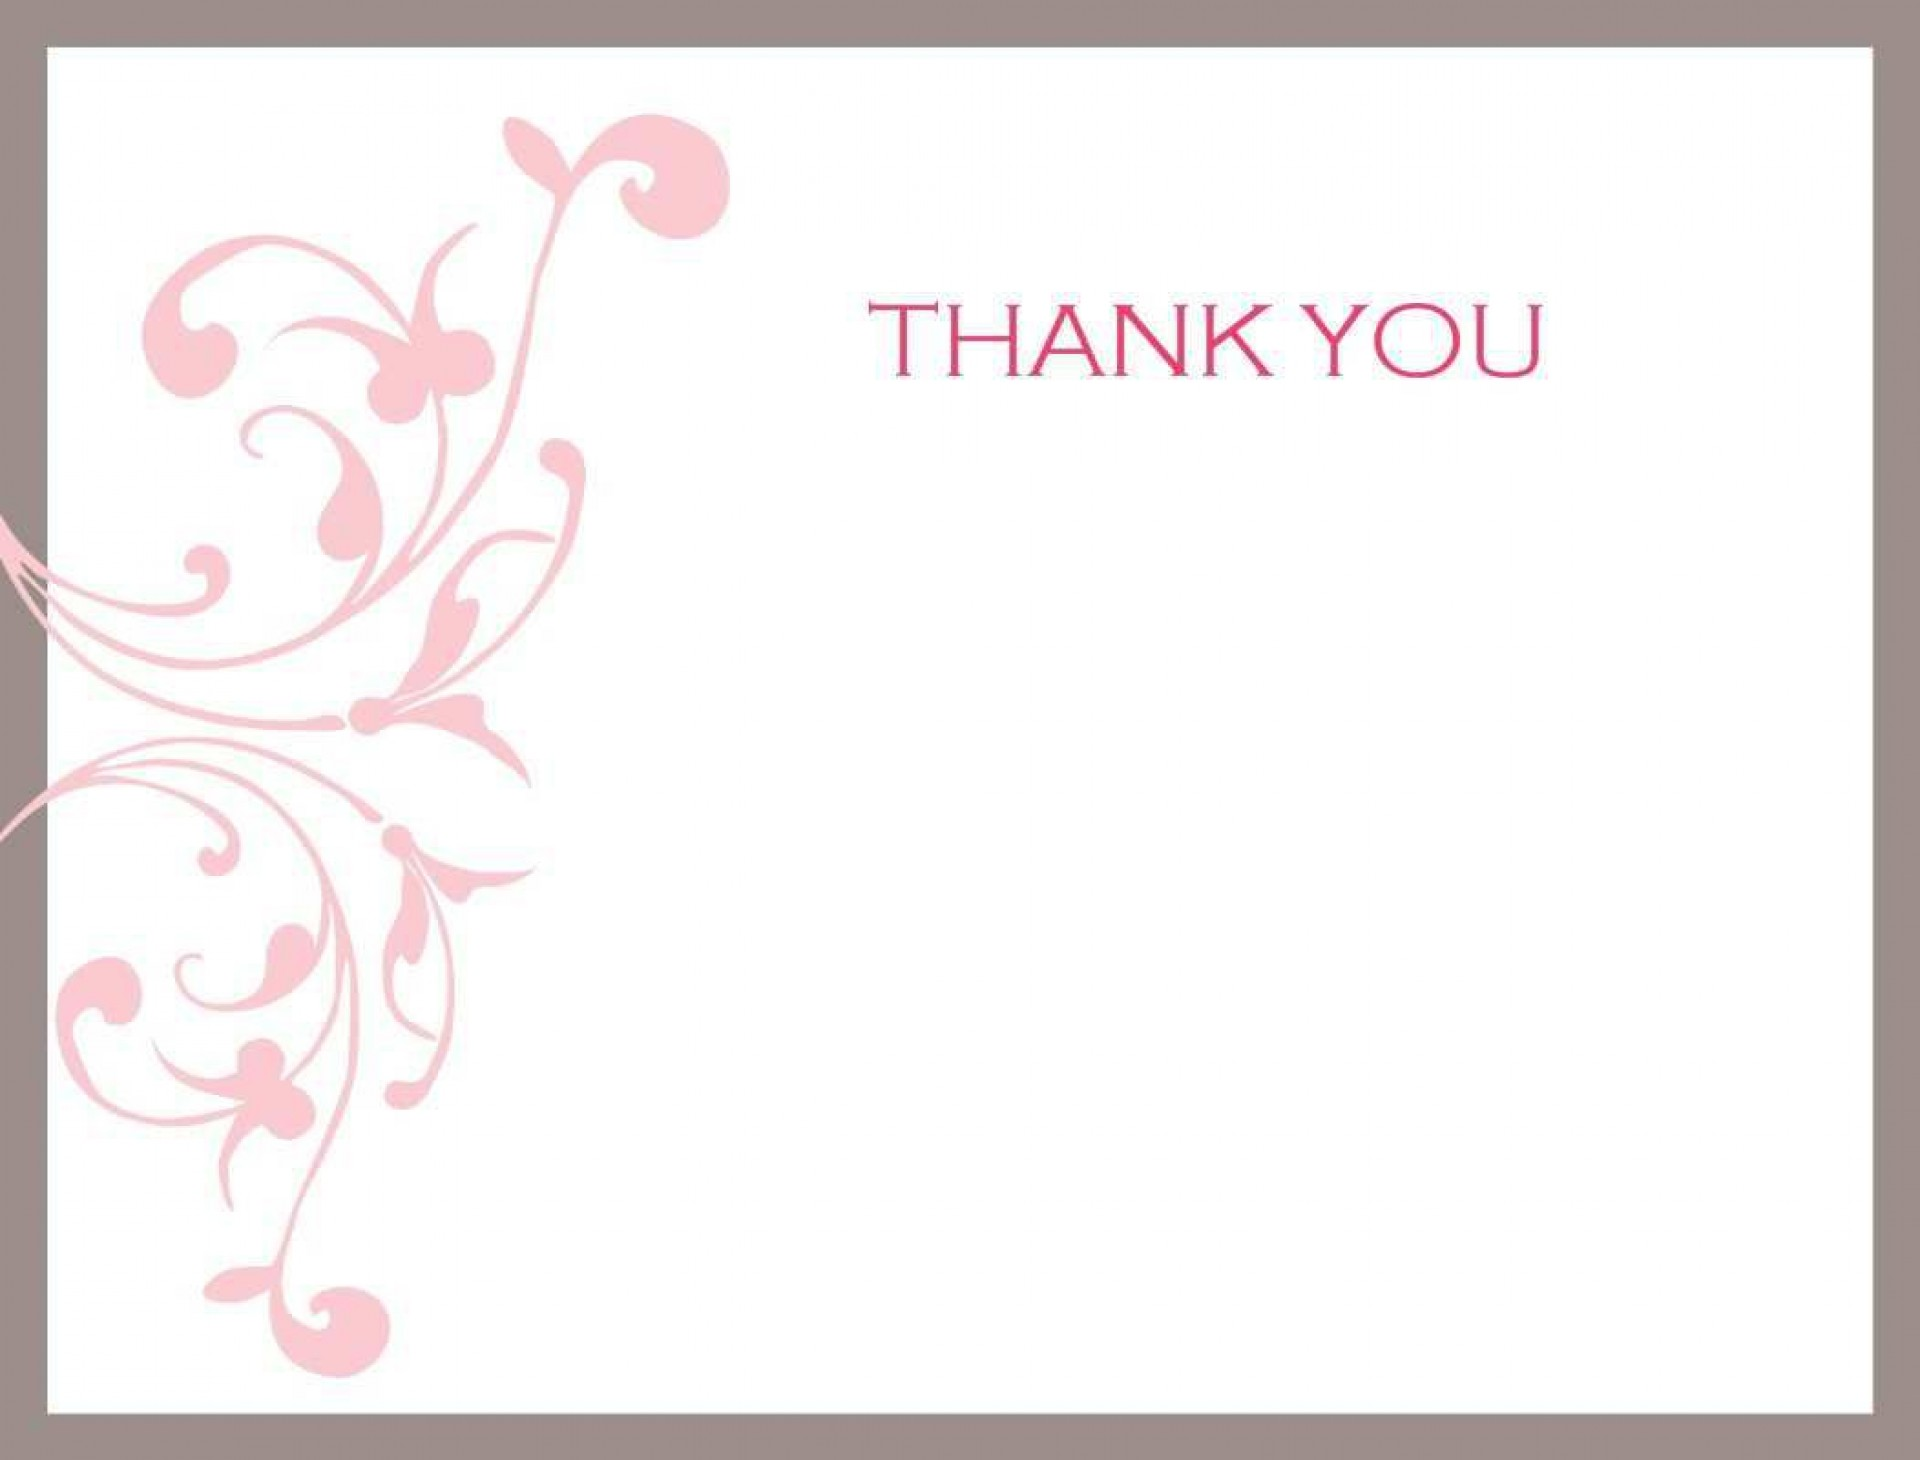 002 Marvelou Thank You Note Template Microsoft Word Image  Card Free Funeral Letter1920